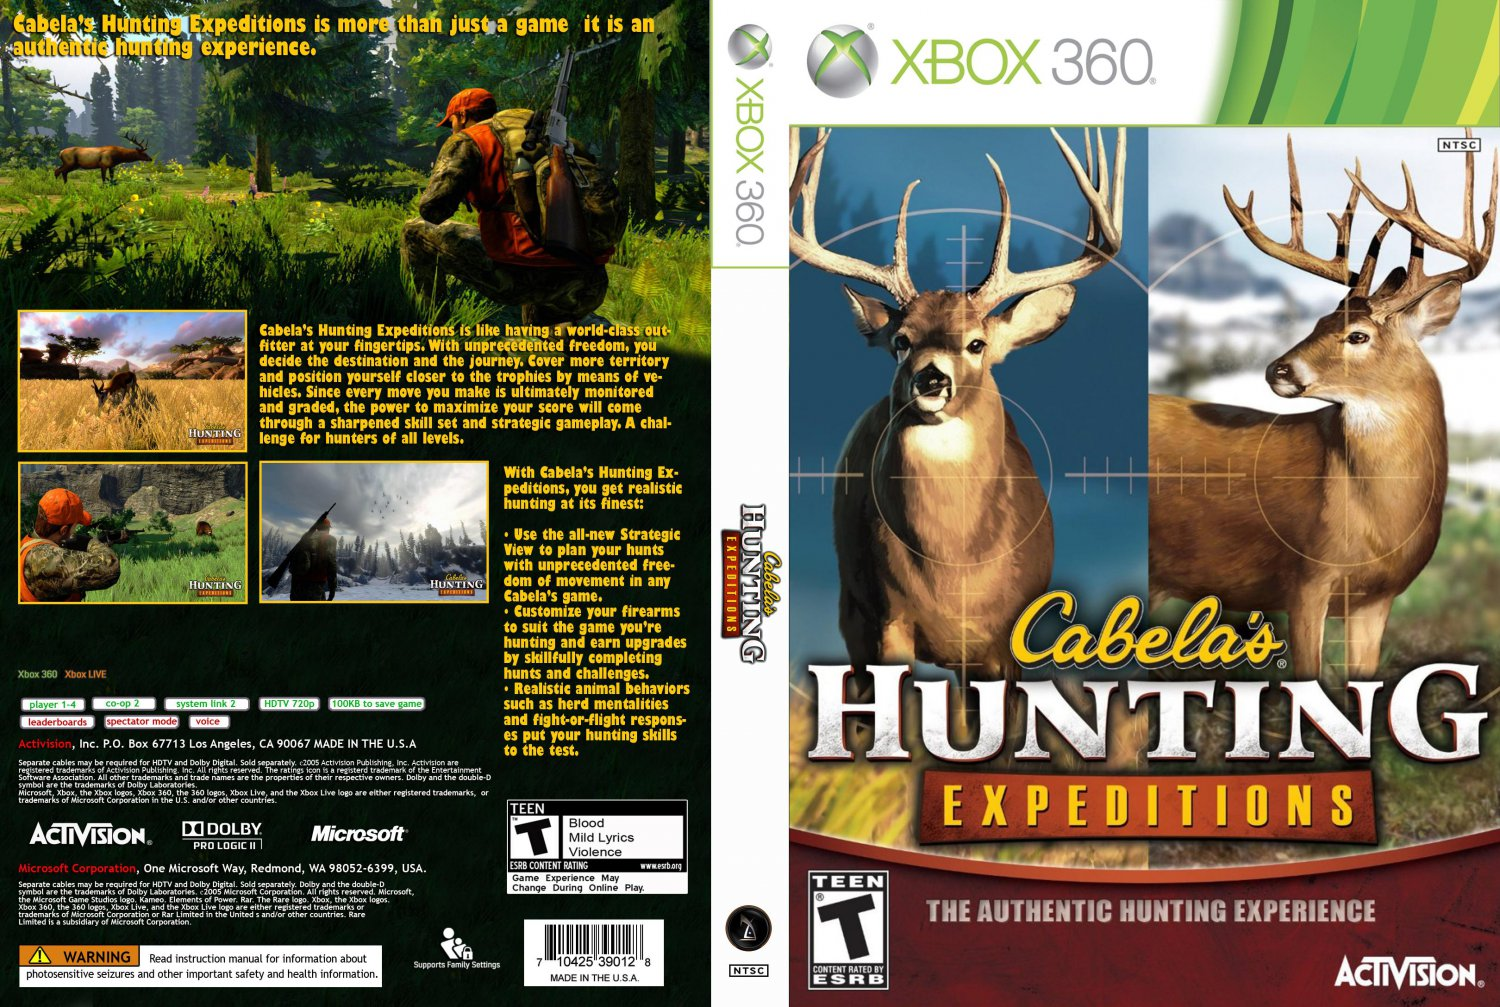 Hunting Games For Xbox 360 : Cabelas hunting expeditions xbox game covers